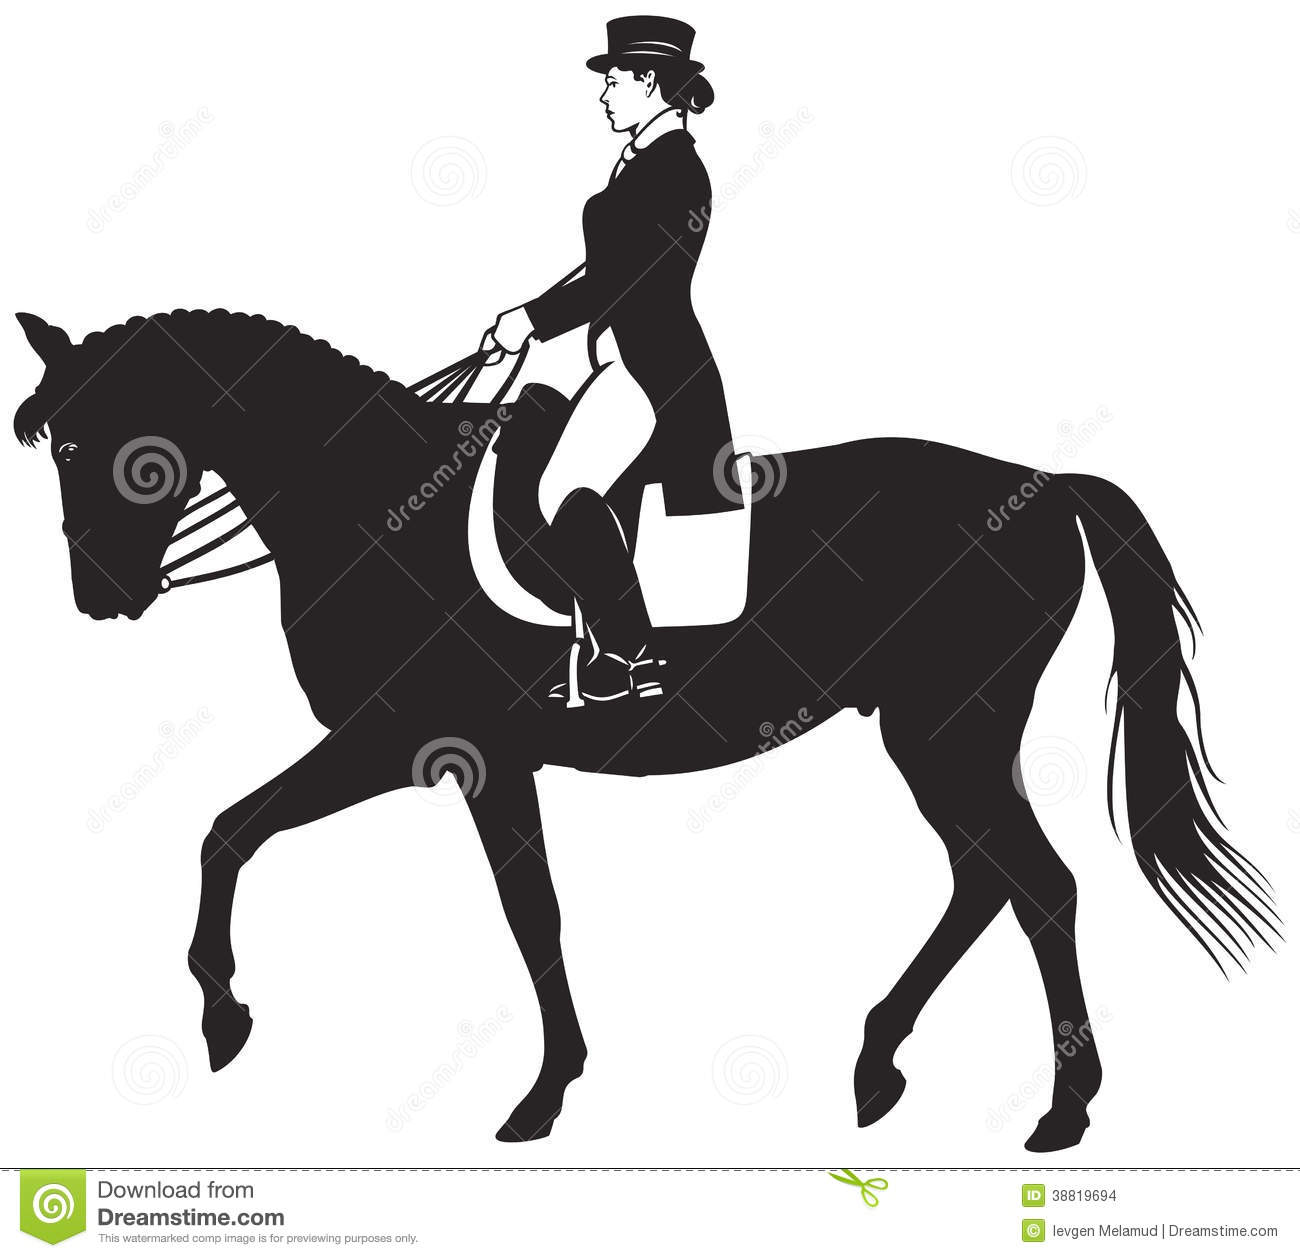 clip art dressage horse - photo #4